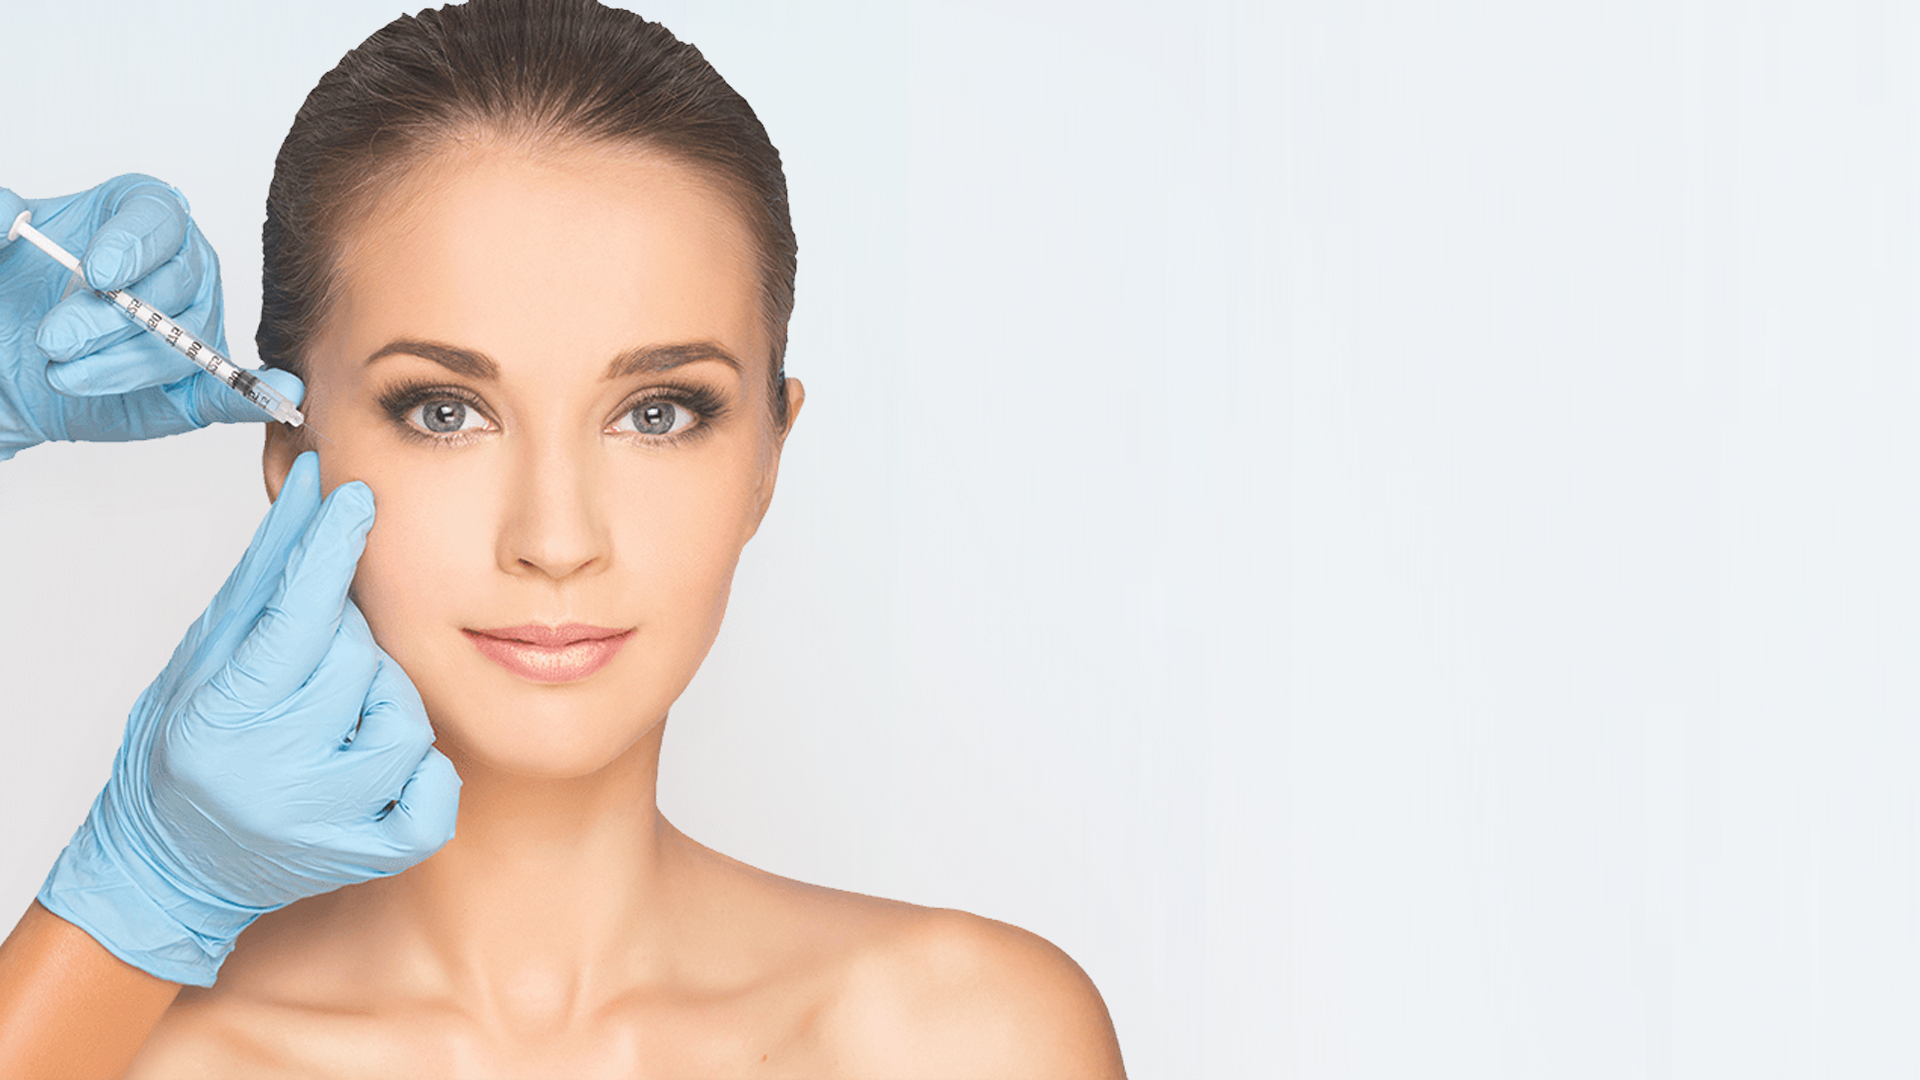 Where Can Botox Be Injected? | Neu Look Med Spa & Skin Center, Botox San Diego